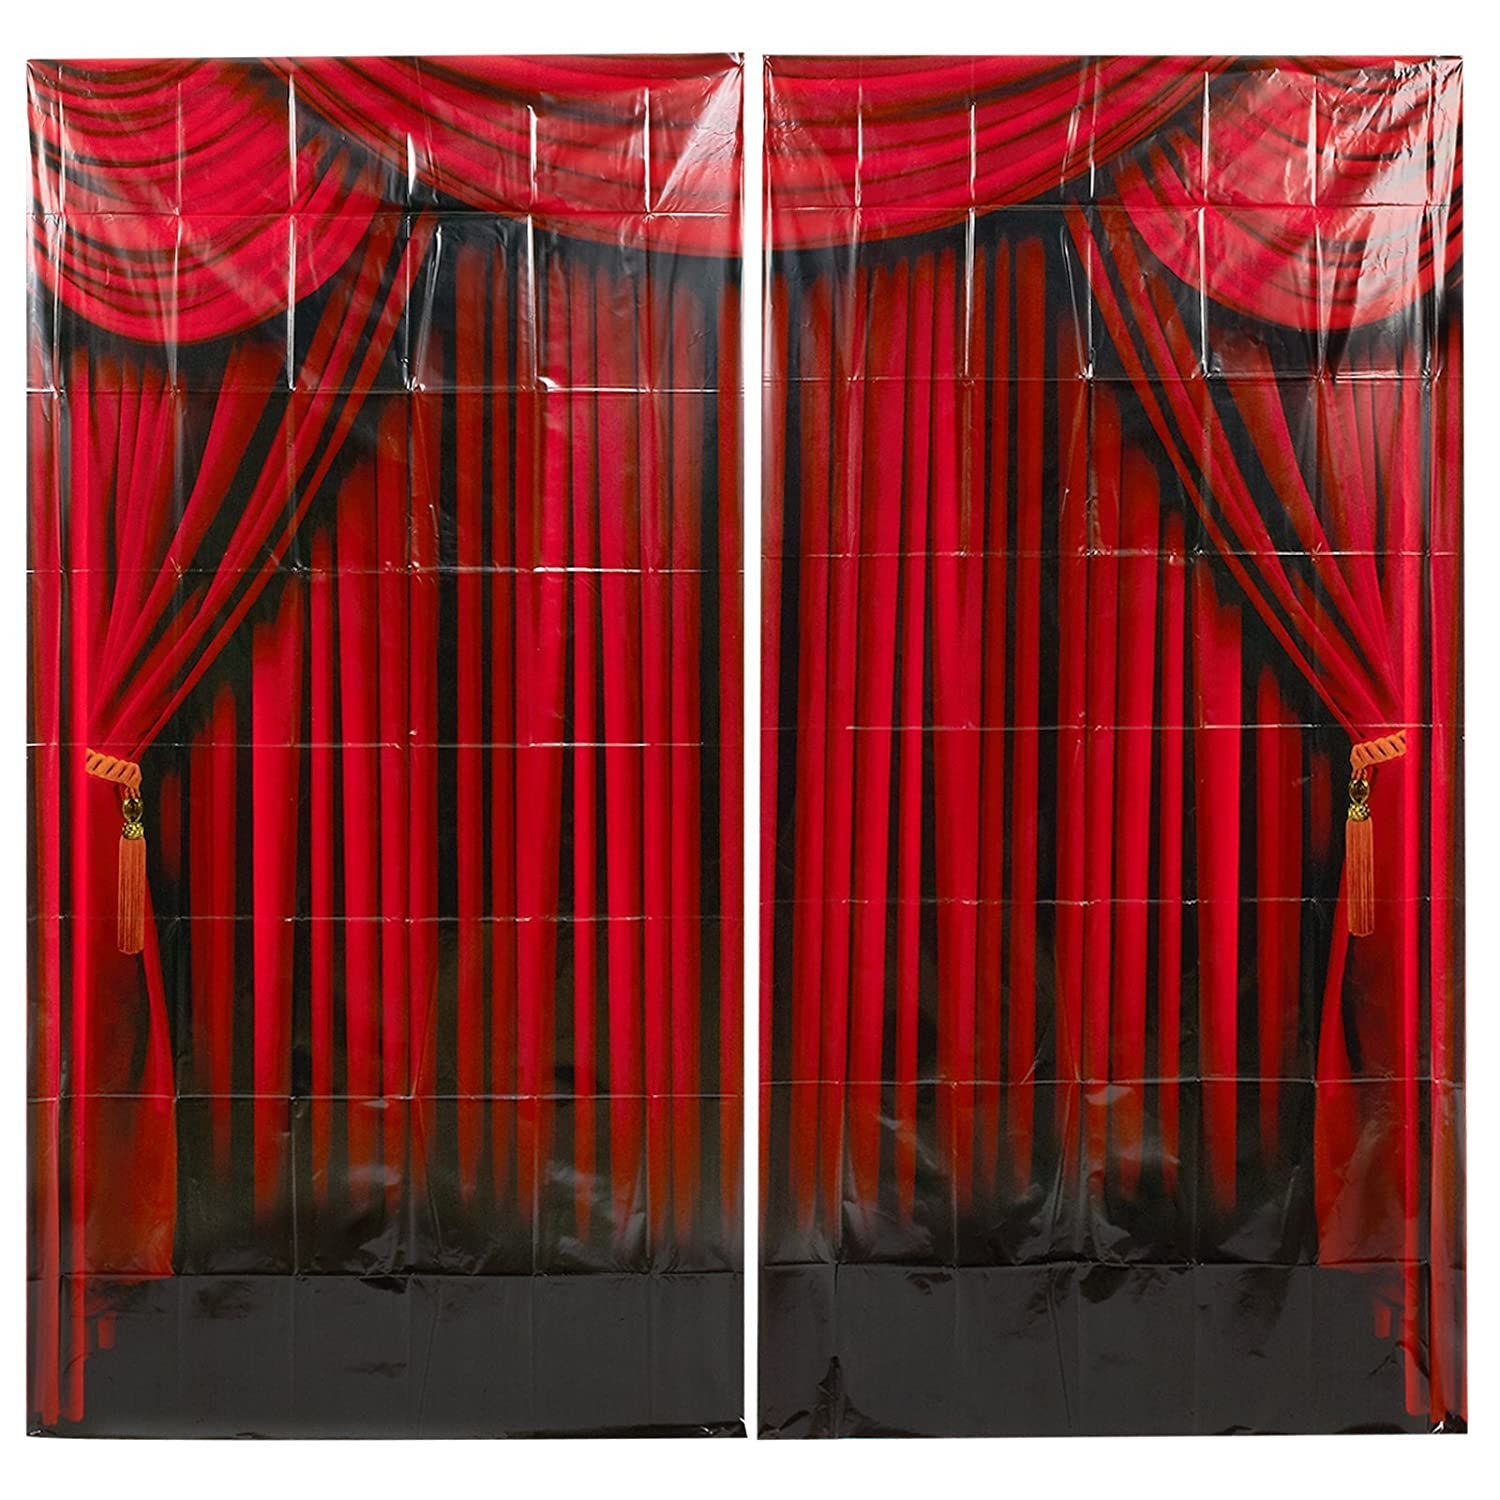 Amazon Fun Express Red Curtain Backdrop Banner Decoration 2 Piece Toys Games